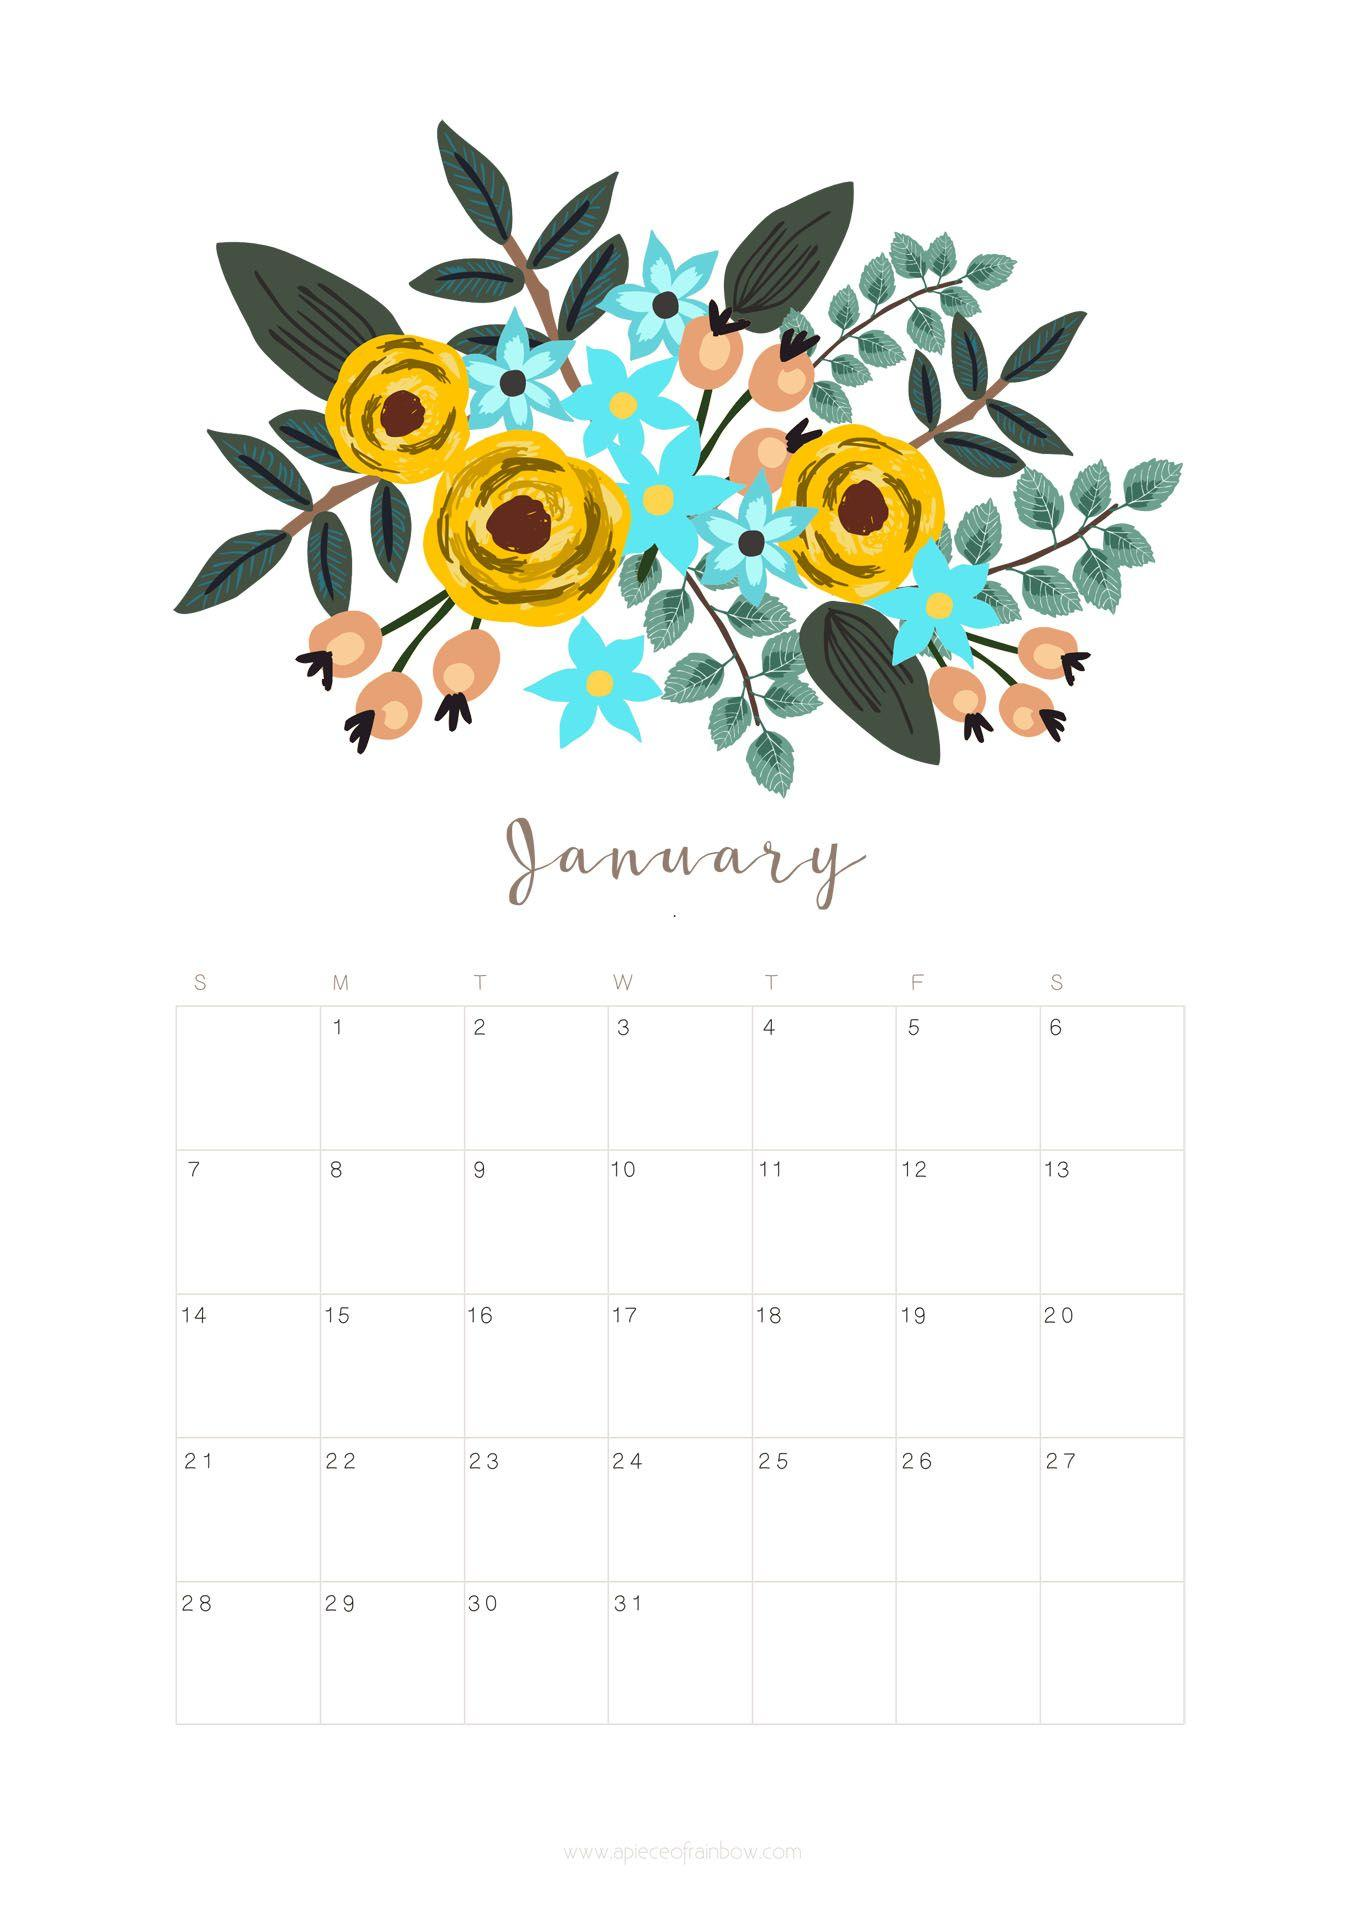 Calendar Design Wallpaper : January calendar wallpapers wallpaper cave